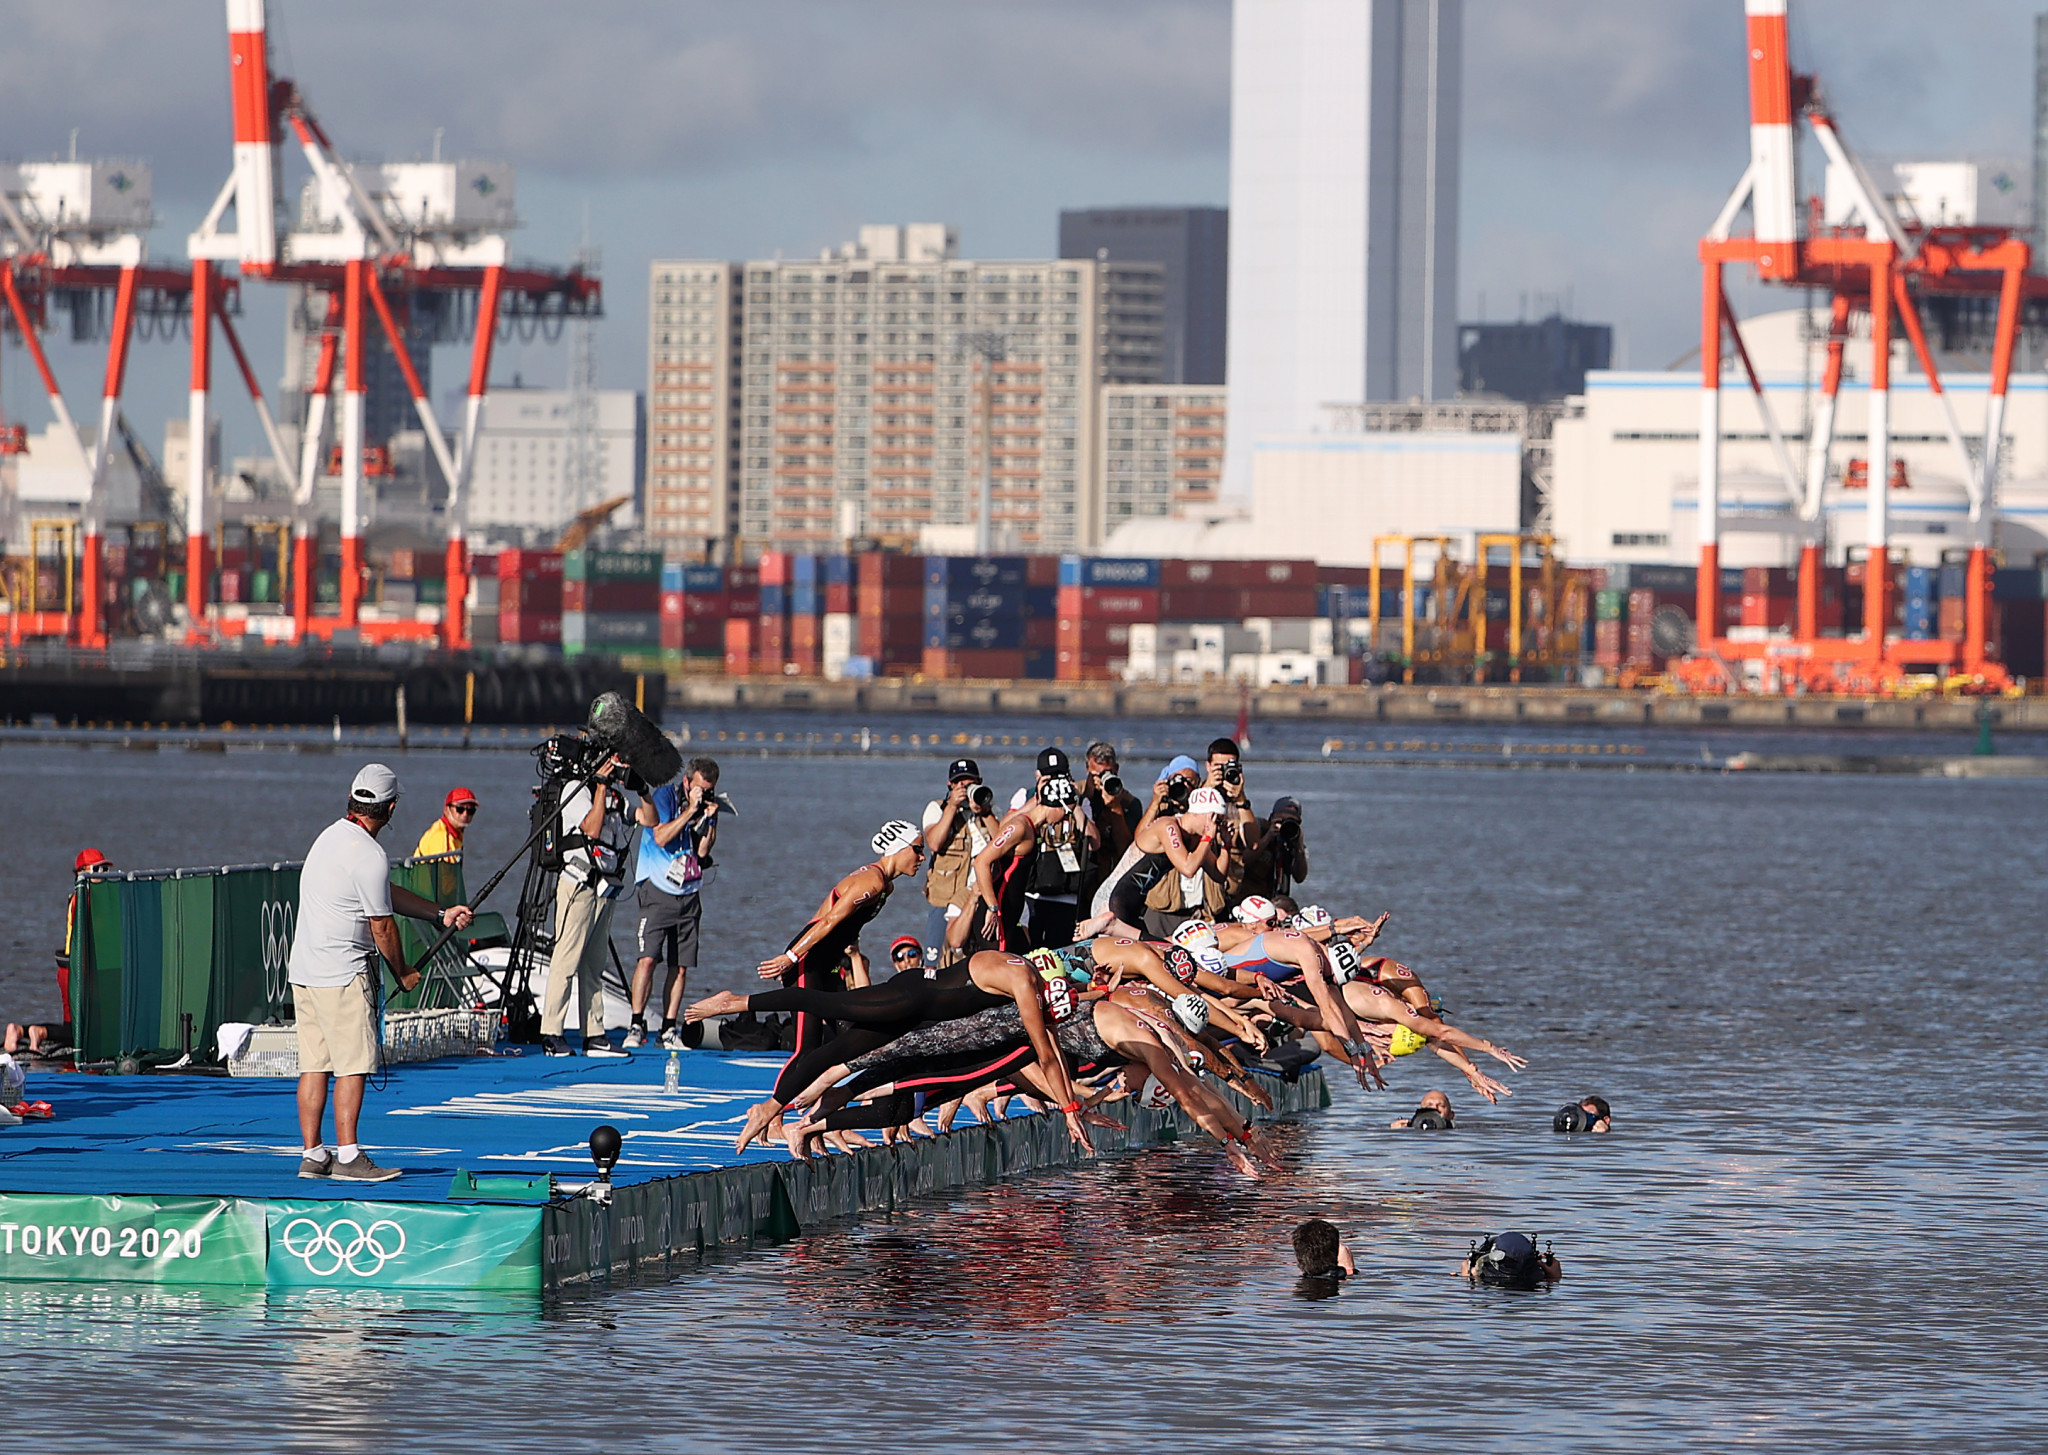 Tokyo 2020 Olympic Games: Day 12 of competition